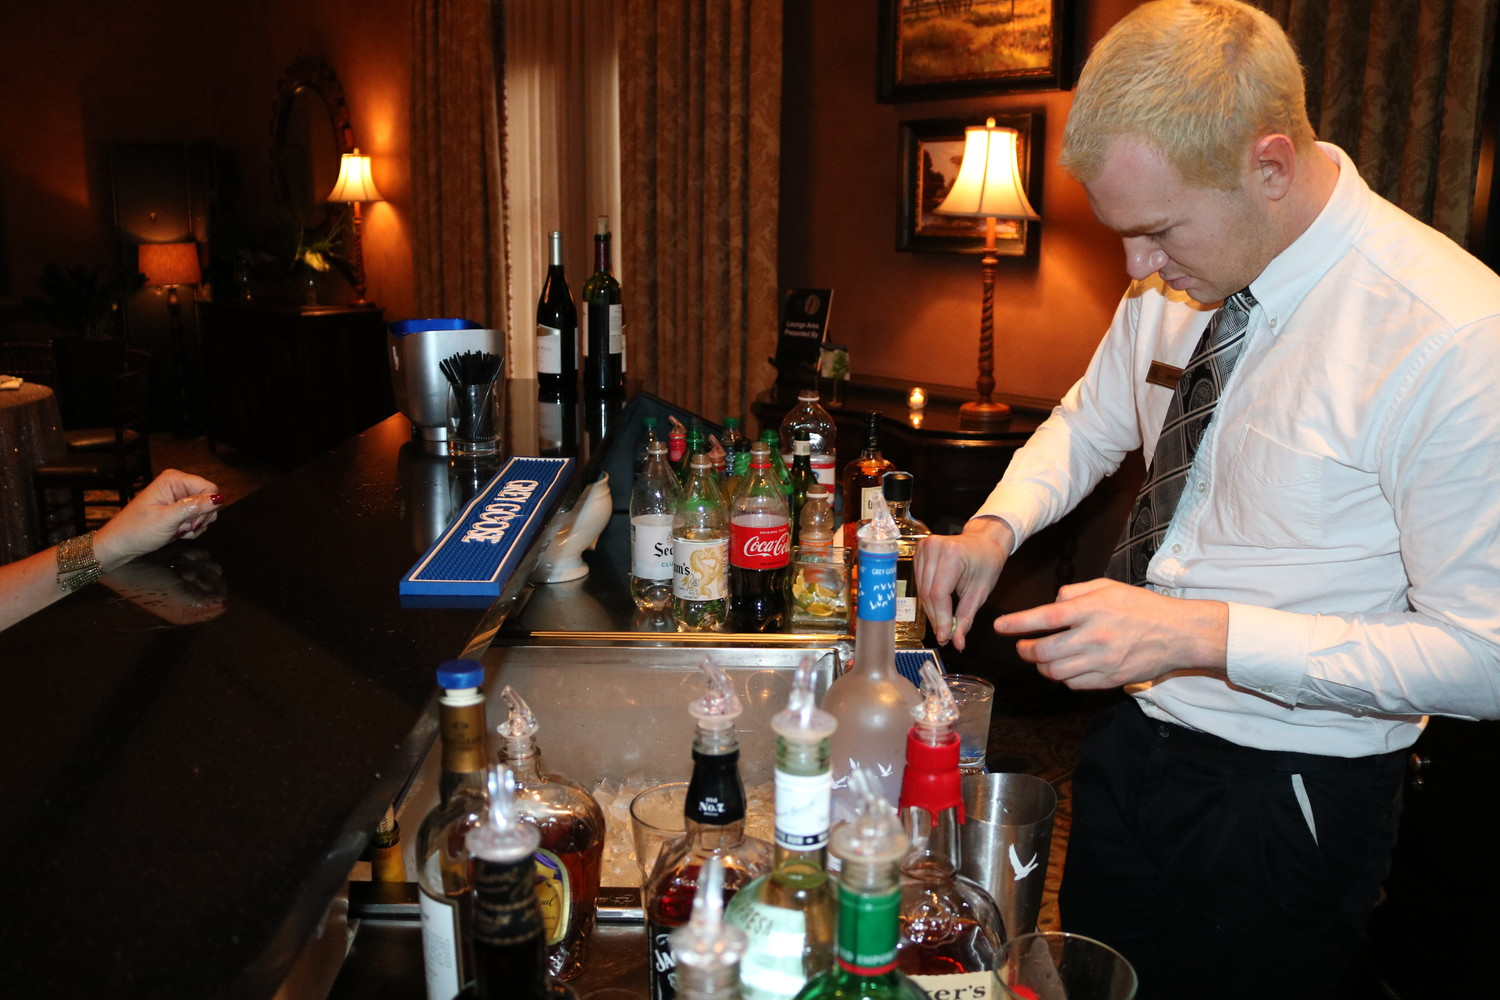 A bartender prepares a drink at the BEAM of Light Ball.